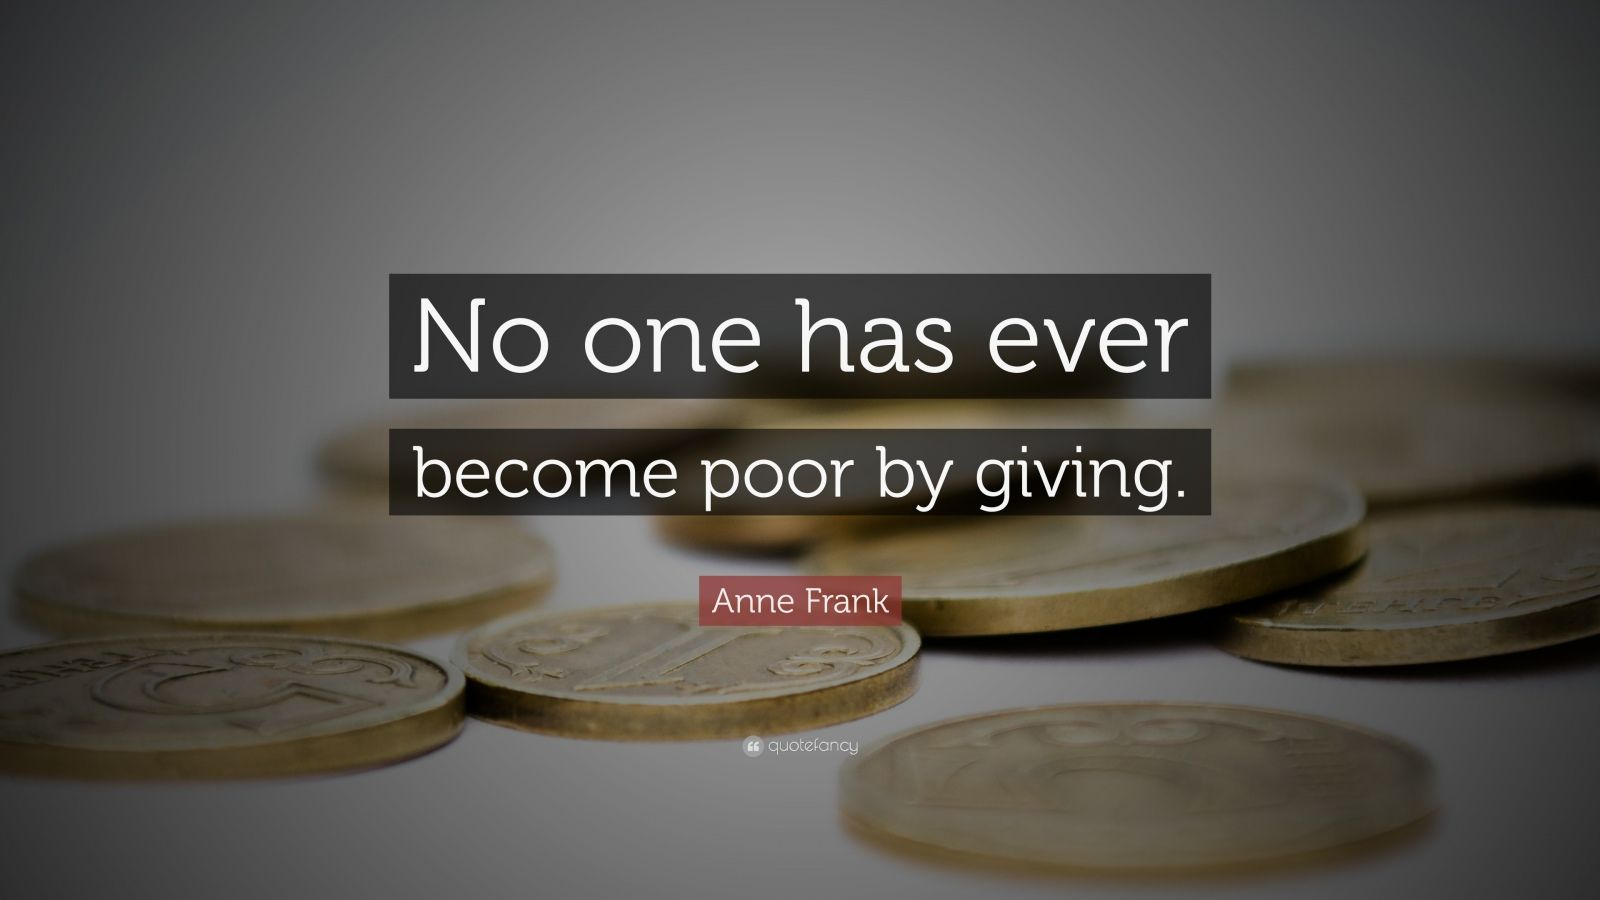 Theodore Roosevelt Wallpaper Quote Anne Frank Quote No One Has Ever Become Poor By Giving